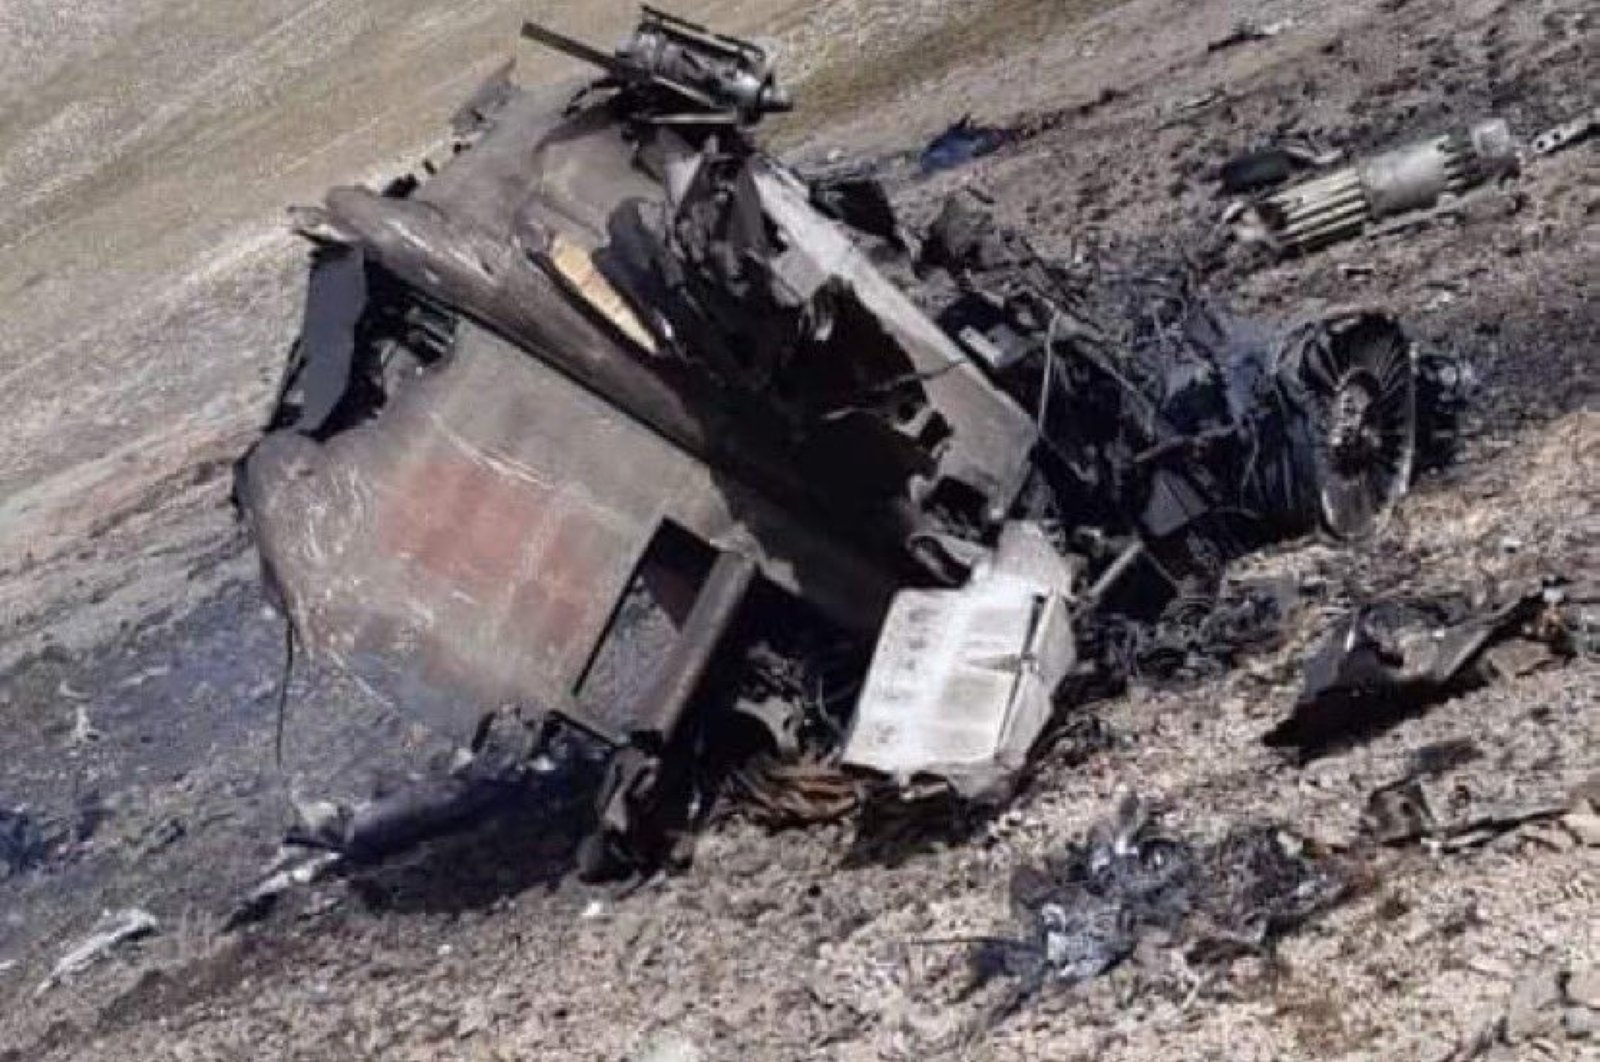 The remains of an Armenian Sukhoi Su-25 warplane that crashed into the mountains during fighting with Azerbaijan over the occupied Nagorny-Karabakh region, Azerbaijan, Sept. 30, 2020. (AFP)